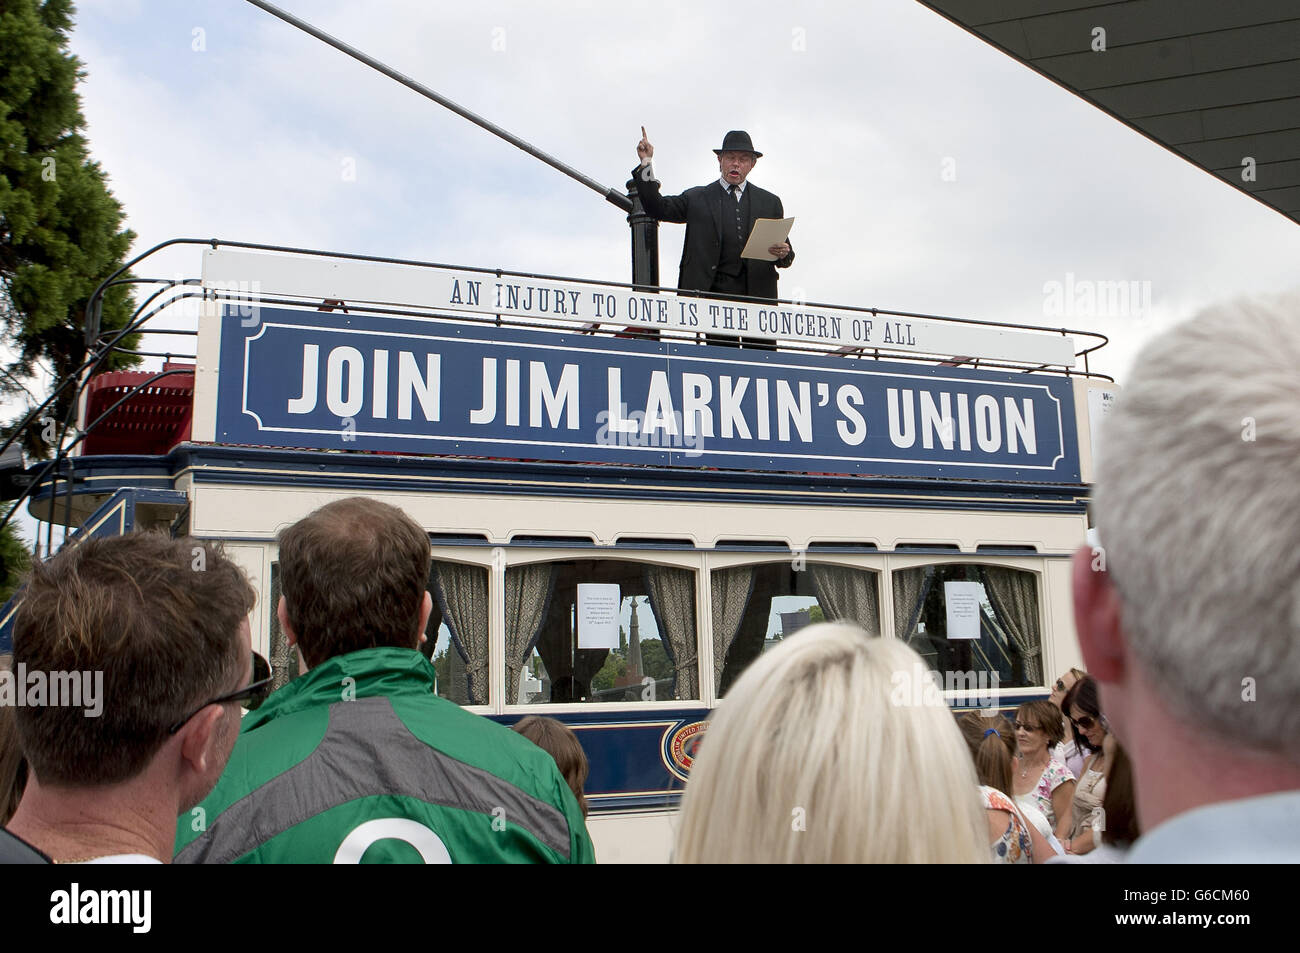 On Union Representation At The Dublin United Tramway Company